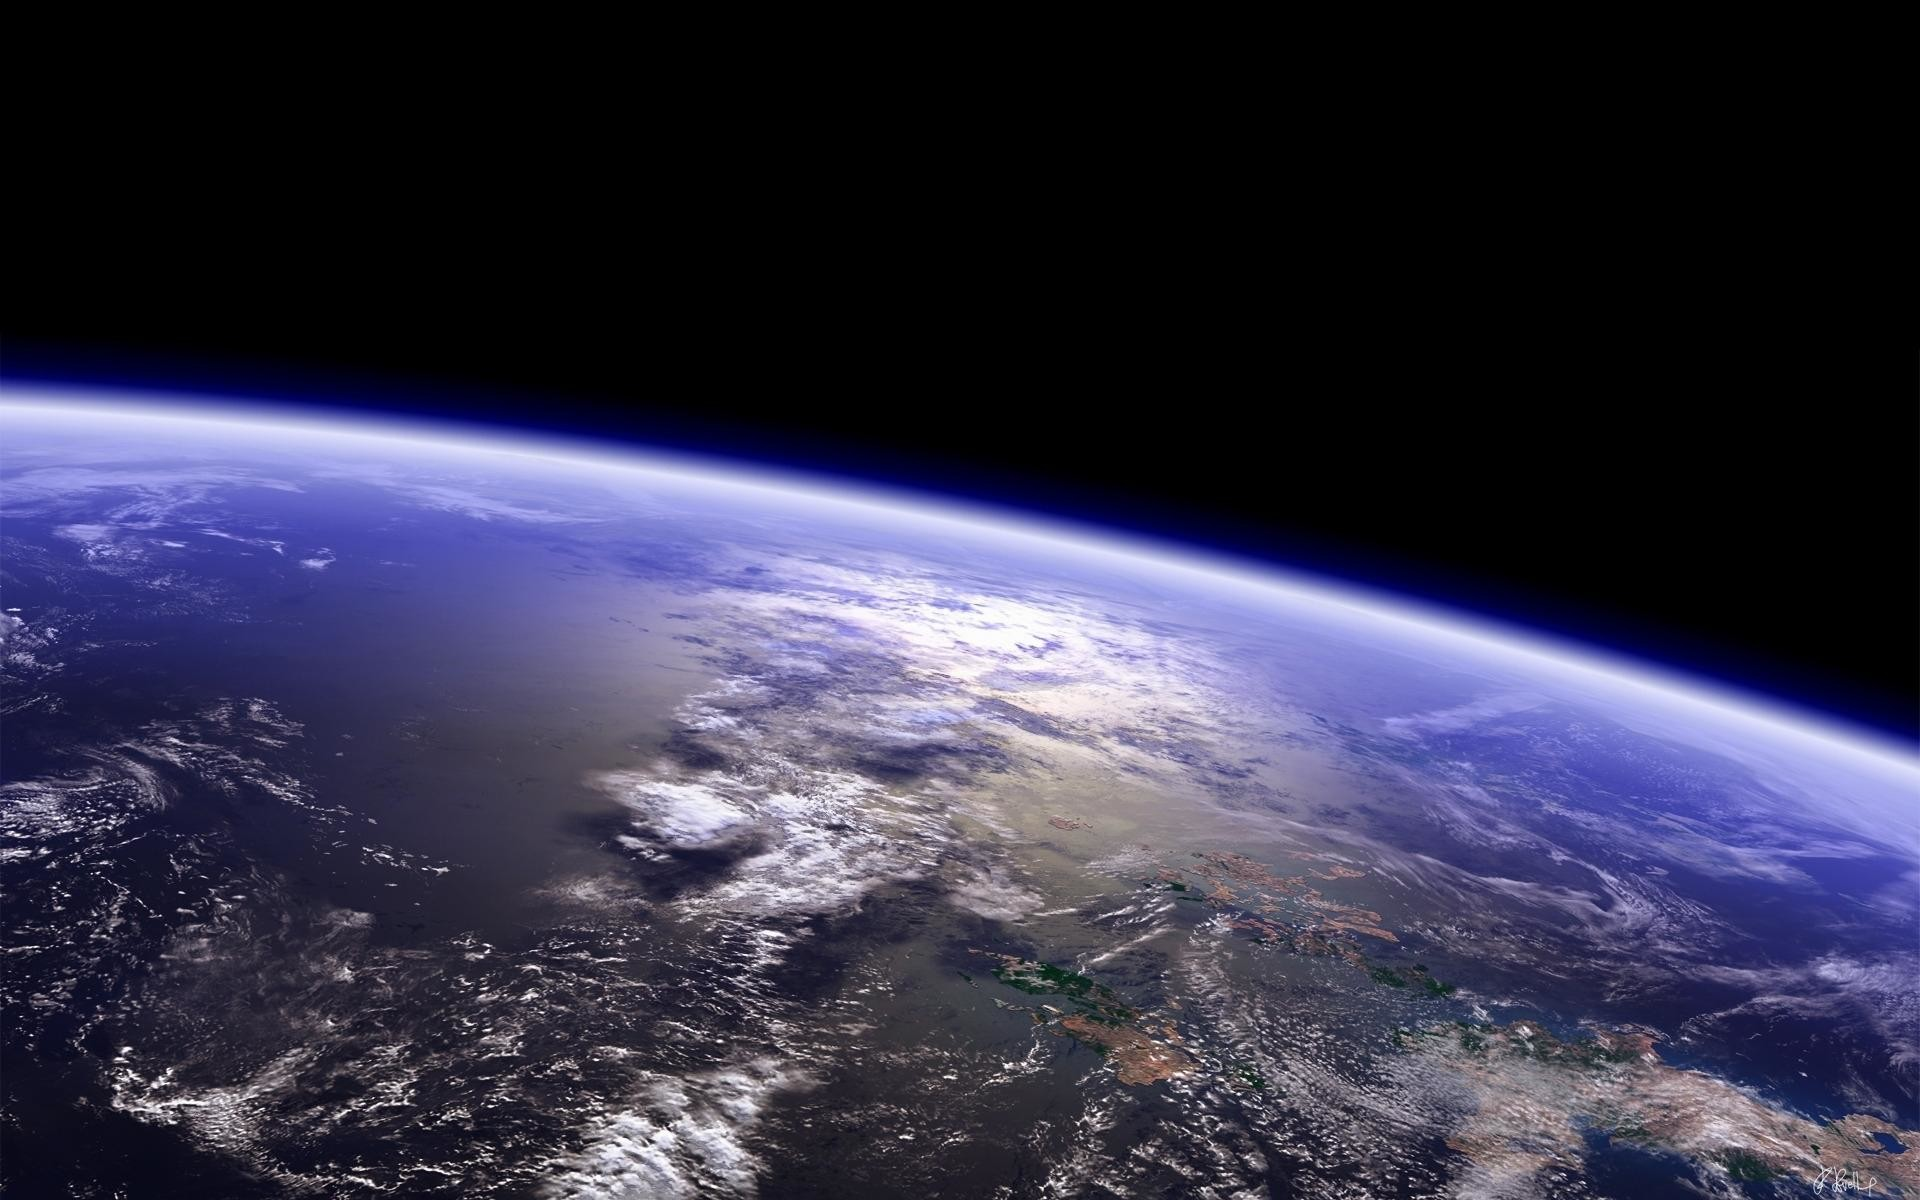 wallpaper.wiki-Desktop-pictures-of-earth-from-space-